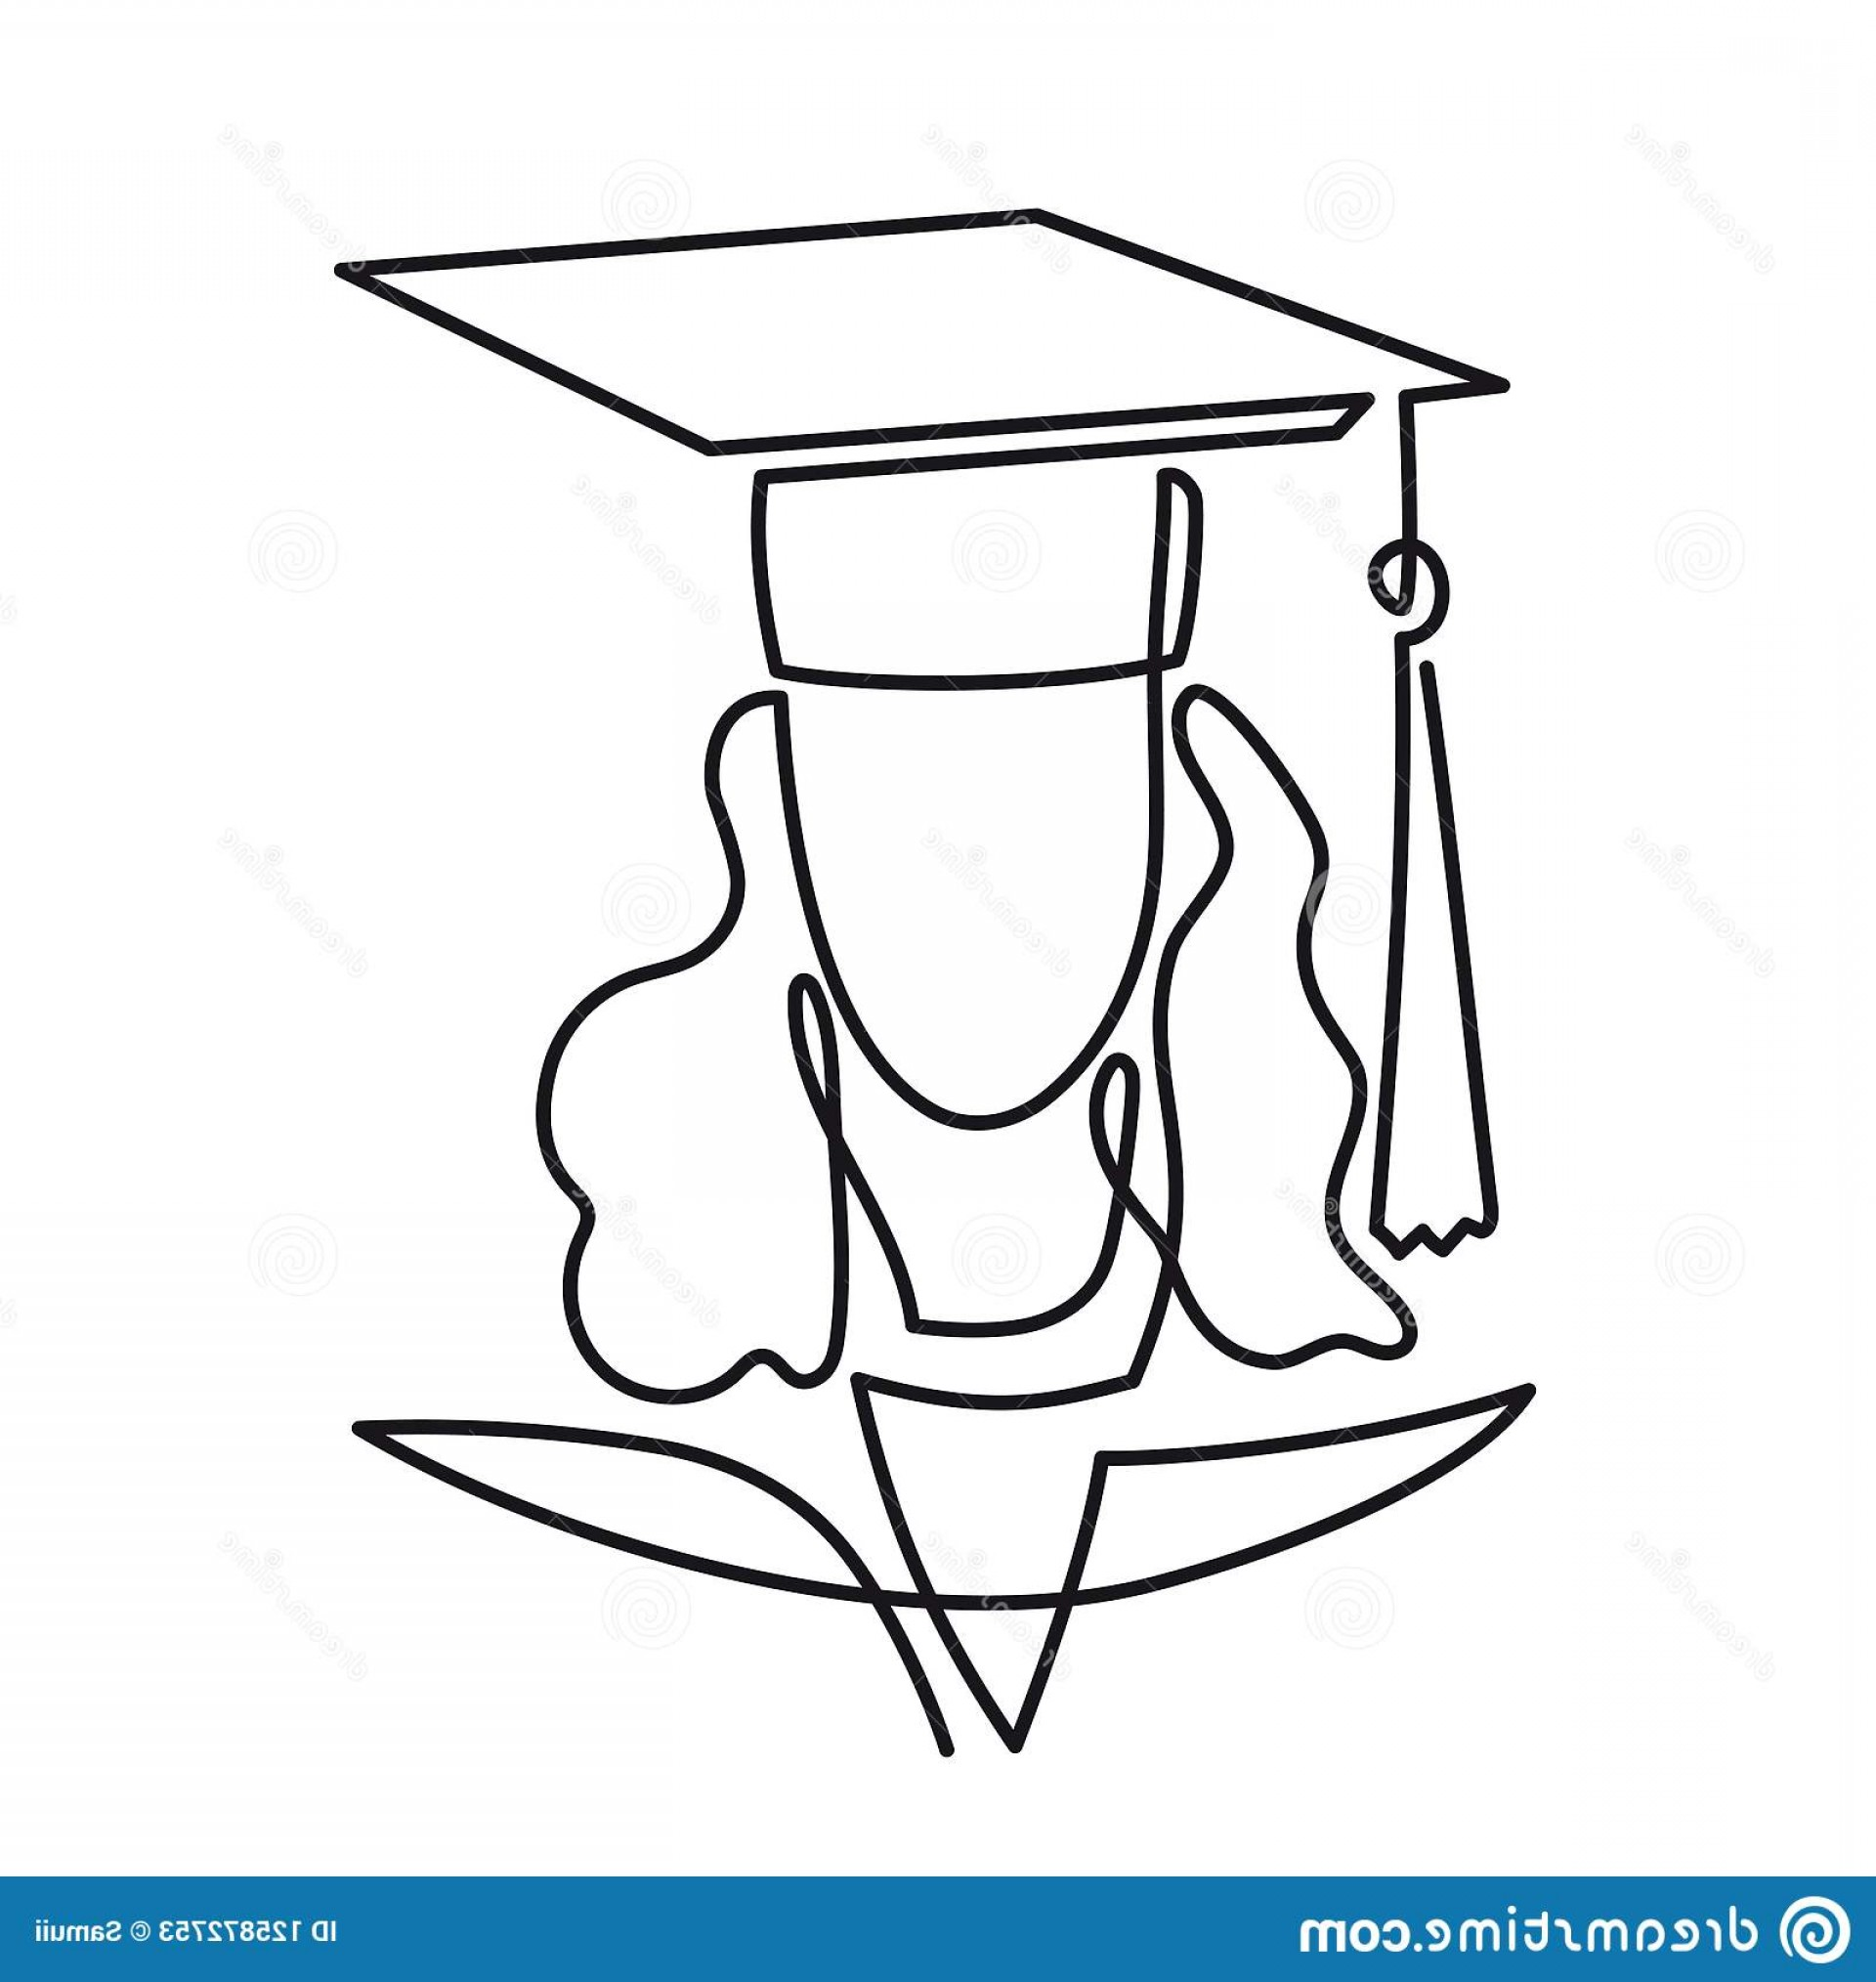 Graduation Clip Art Vector: Continuous Line Drawing Graduation Student Vector One Art Icon Isolated White Background Graduate Woman Linear Pictogram Image